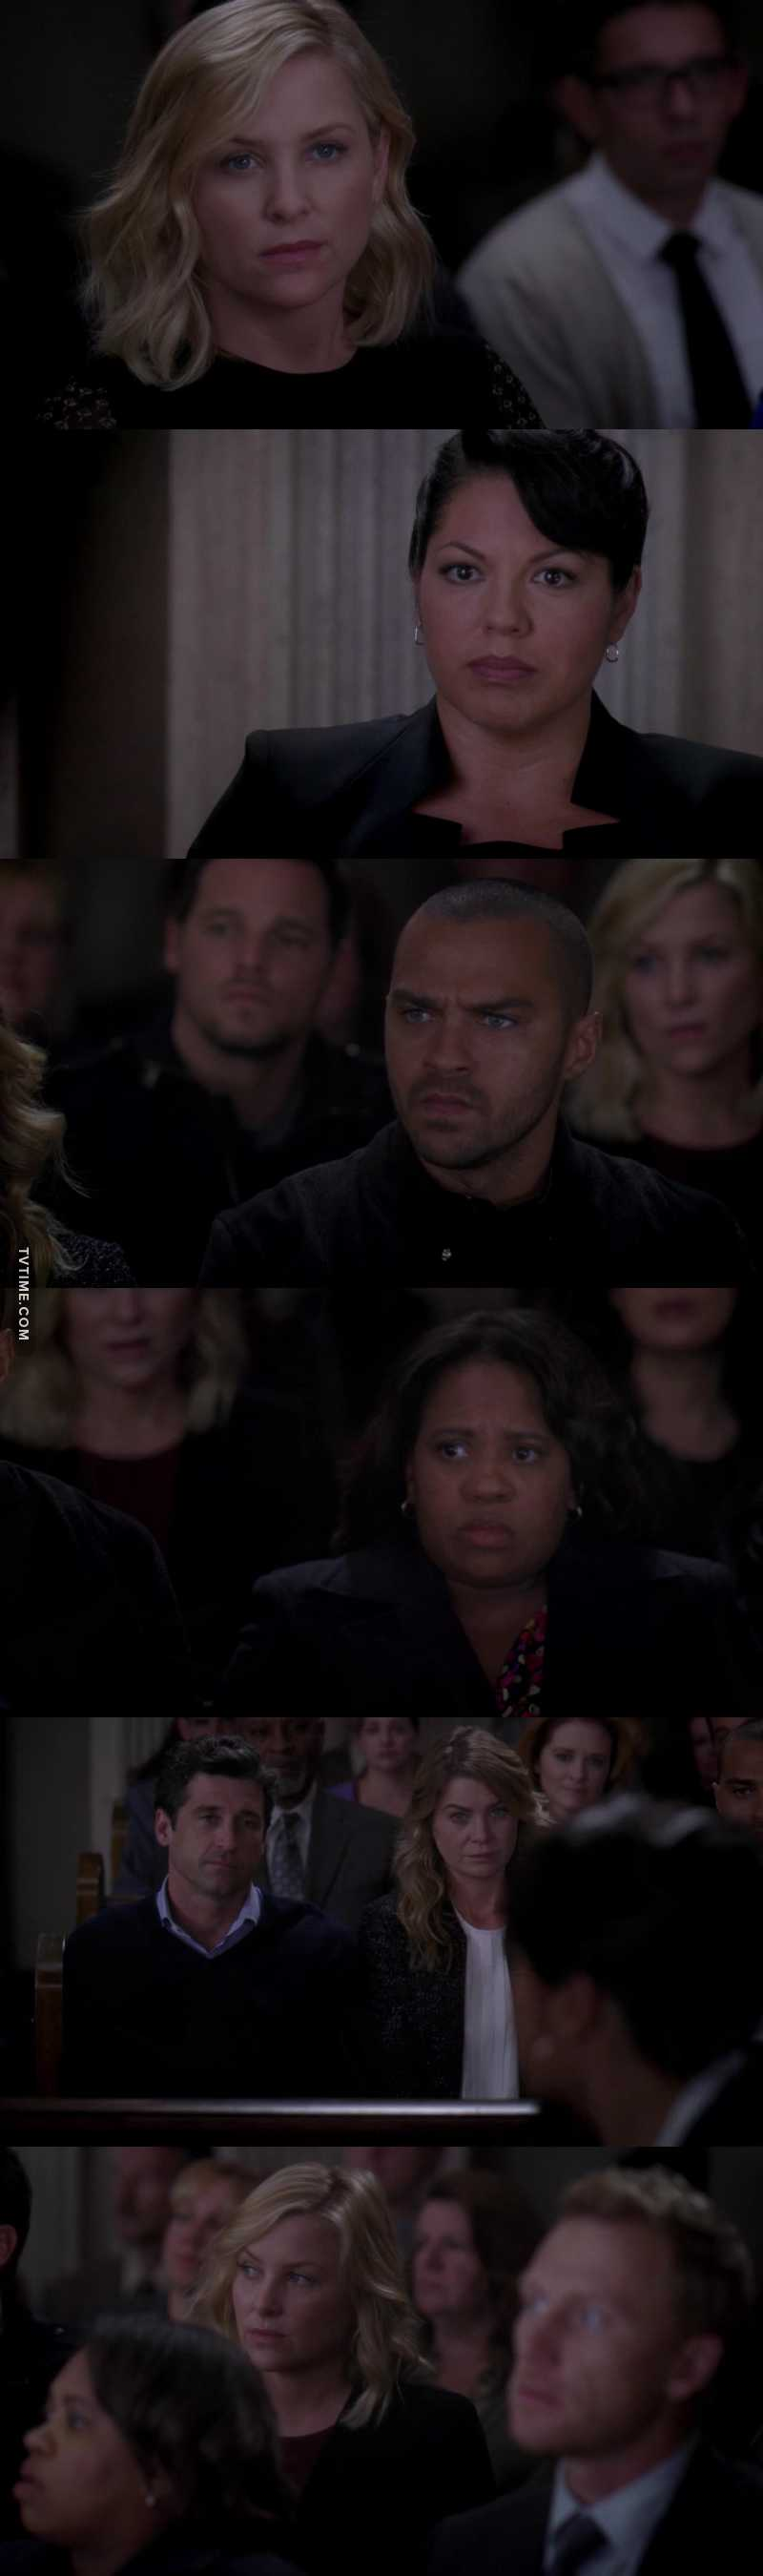 I think it was amazing that Callie's colleagues came to court to support her! That's is so great!